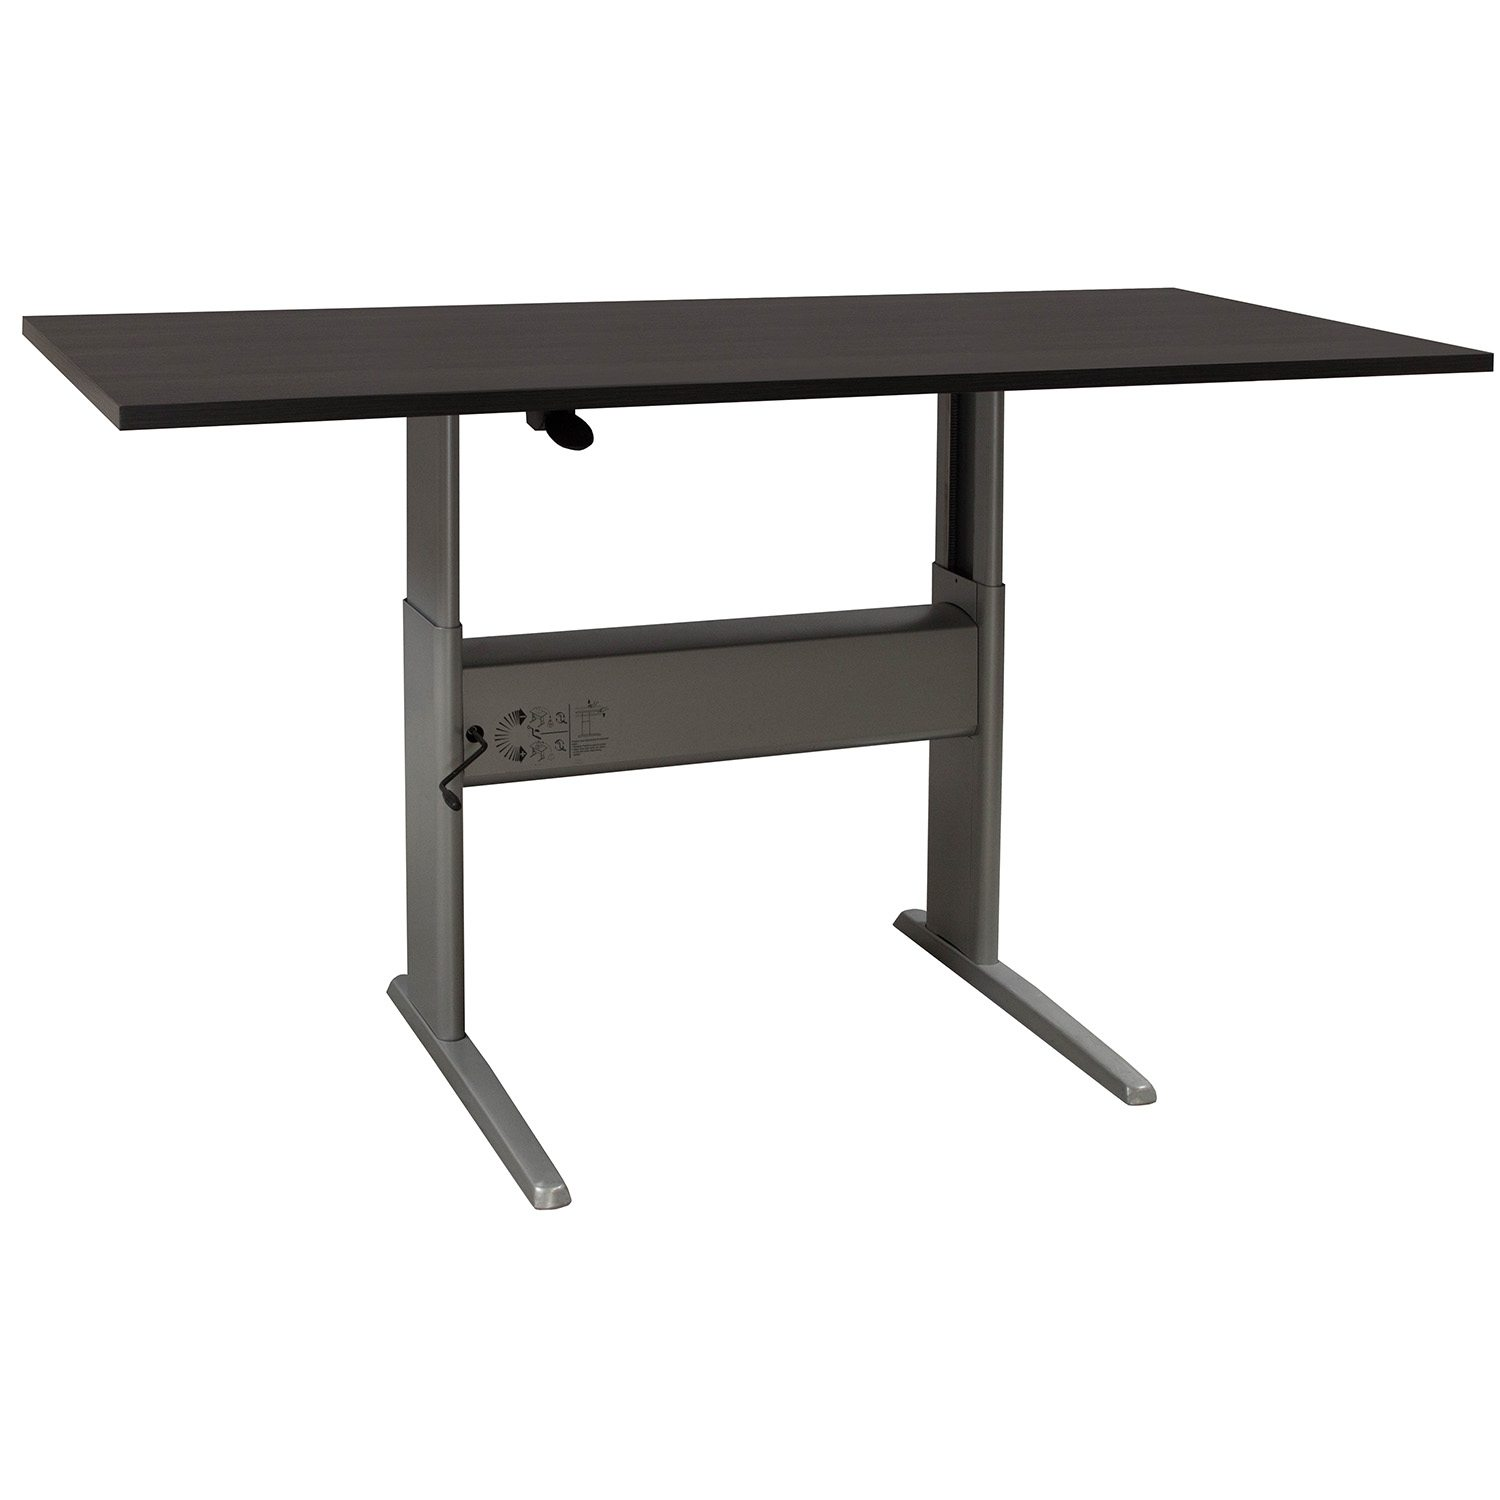 Ergotech Used 30 72 Adjustable Height Table National Office